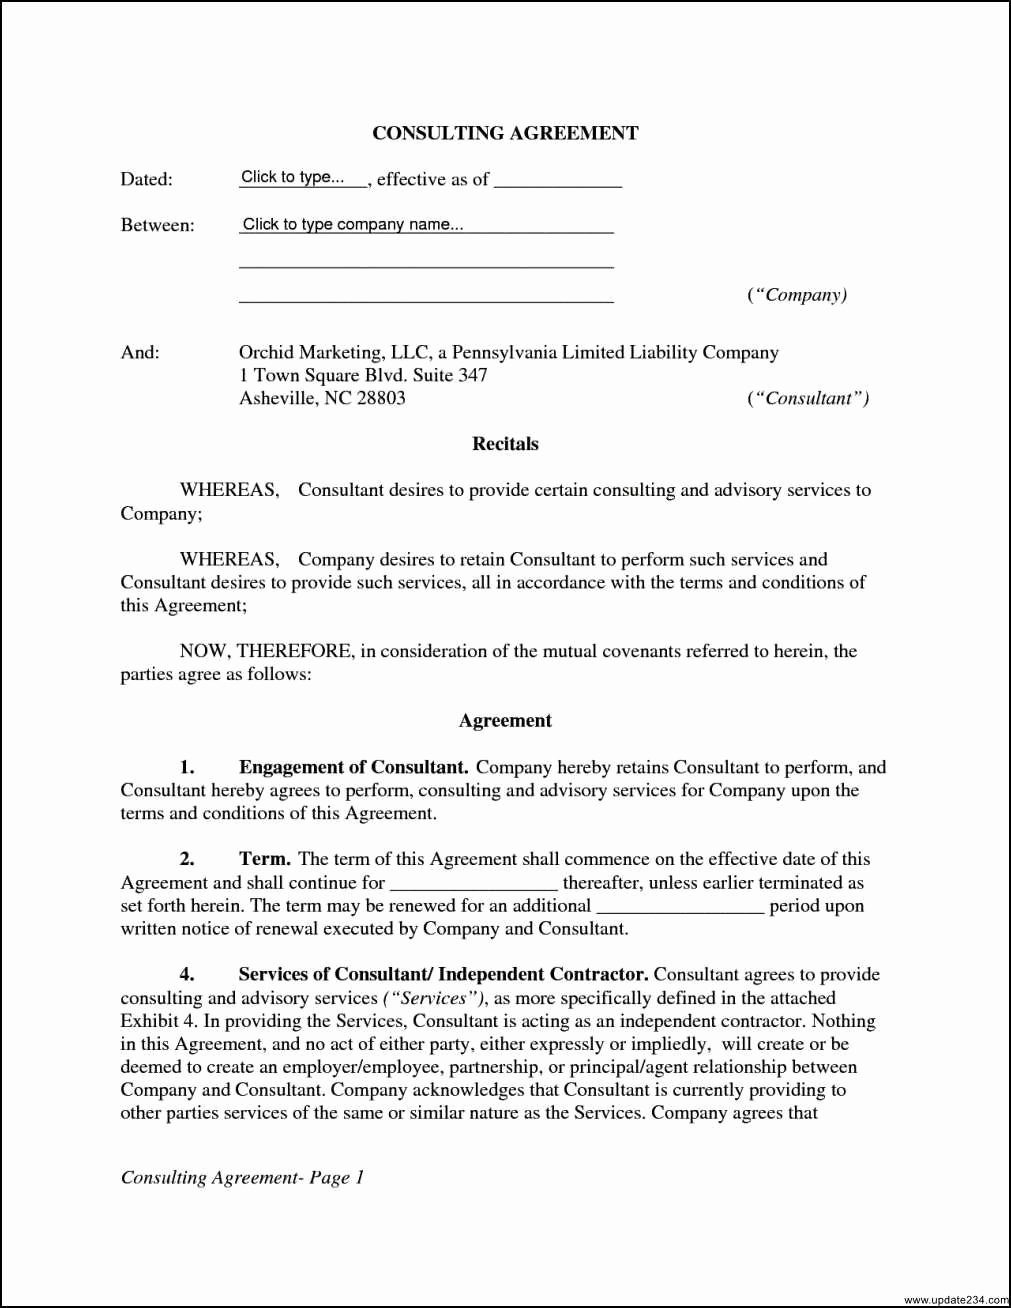 Free Consulting Agreement Template Beautiful 32 Last Simple Consulting Agreement Template Da